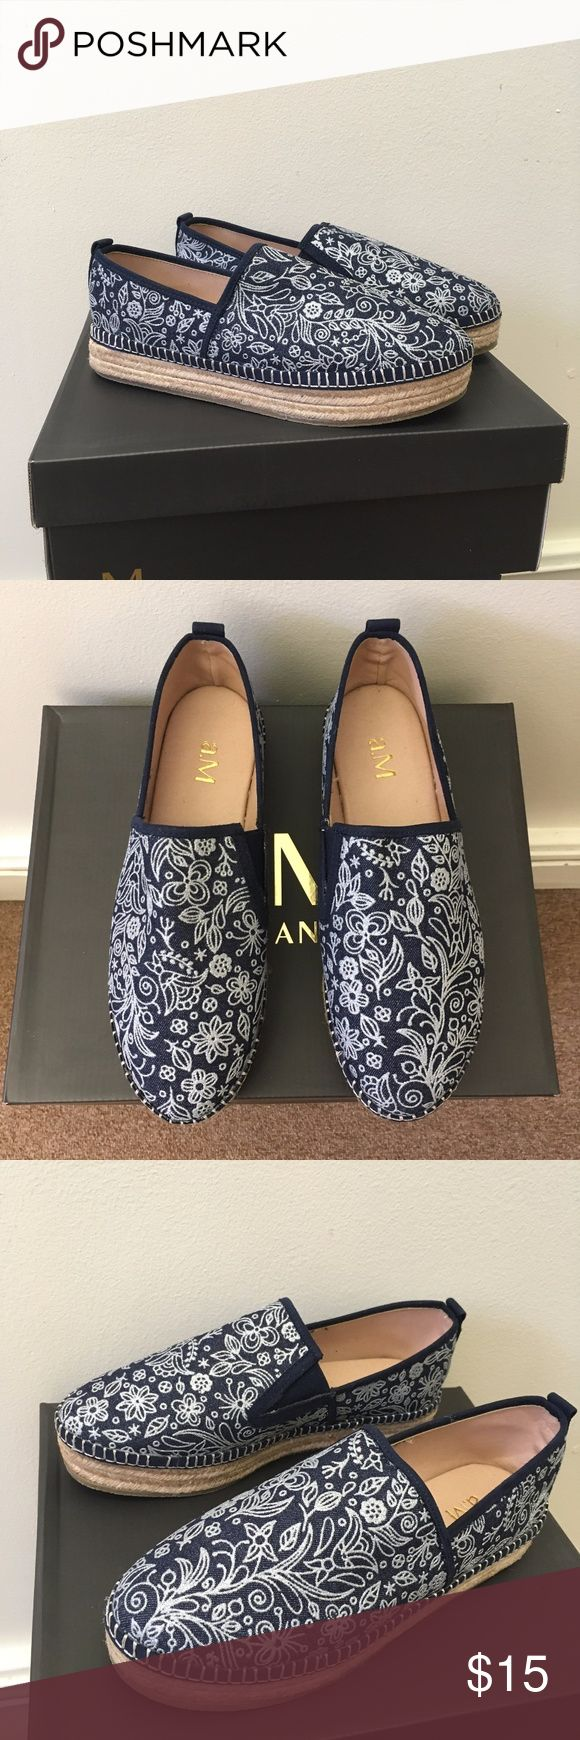 """NWT NAVY PAISLEY TRIBECA ESPADRILLE Sold out on Inkkas Footware website! a.M. Marcus Anthony brand. Size US 8/EU 39/CM 24.8. I am size 8.5 and they fit fine/snug. New with Box. """"It features a braided midsole and a rubber sole with a splash of color to highlight your step. Jute soles and textile uppers combine forces to help you be the most stylish version of yourself. These handcrafted shoes are made with authentic global textiles in Mexico."""" Reinforced heel, comfort instep. Pattern is shiny…"""